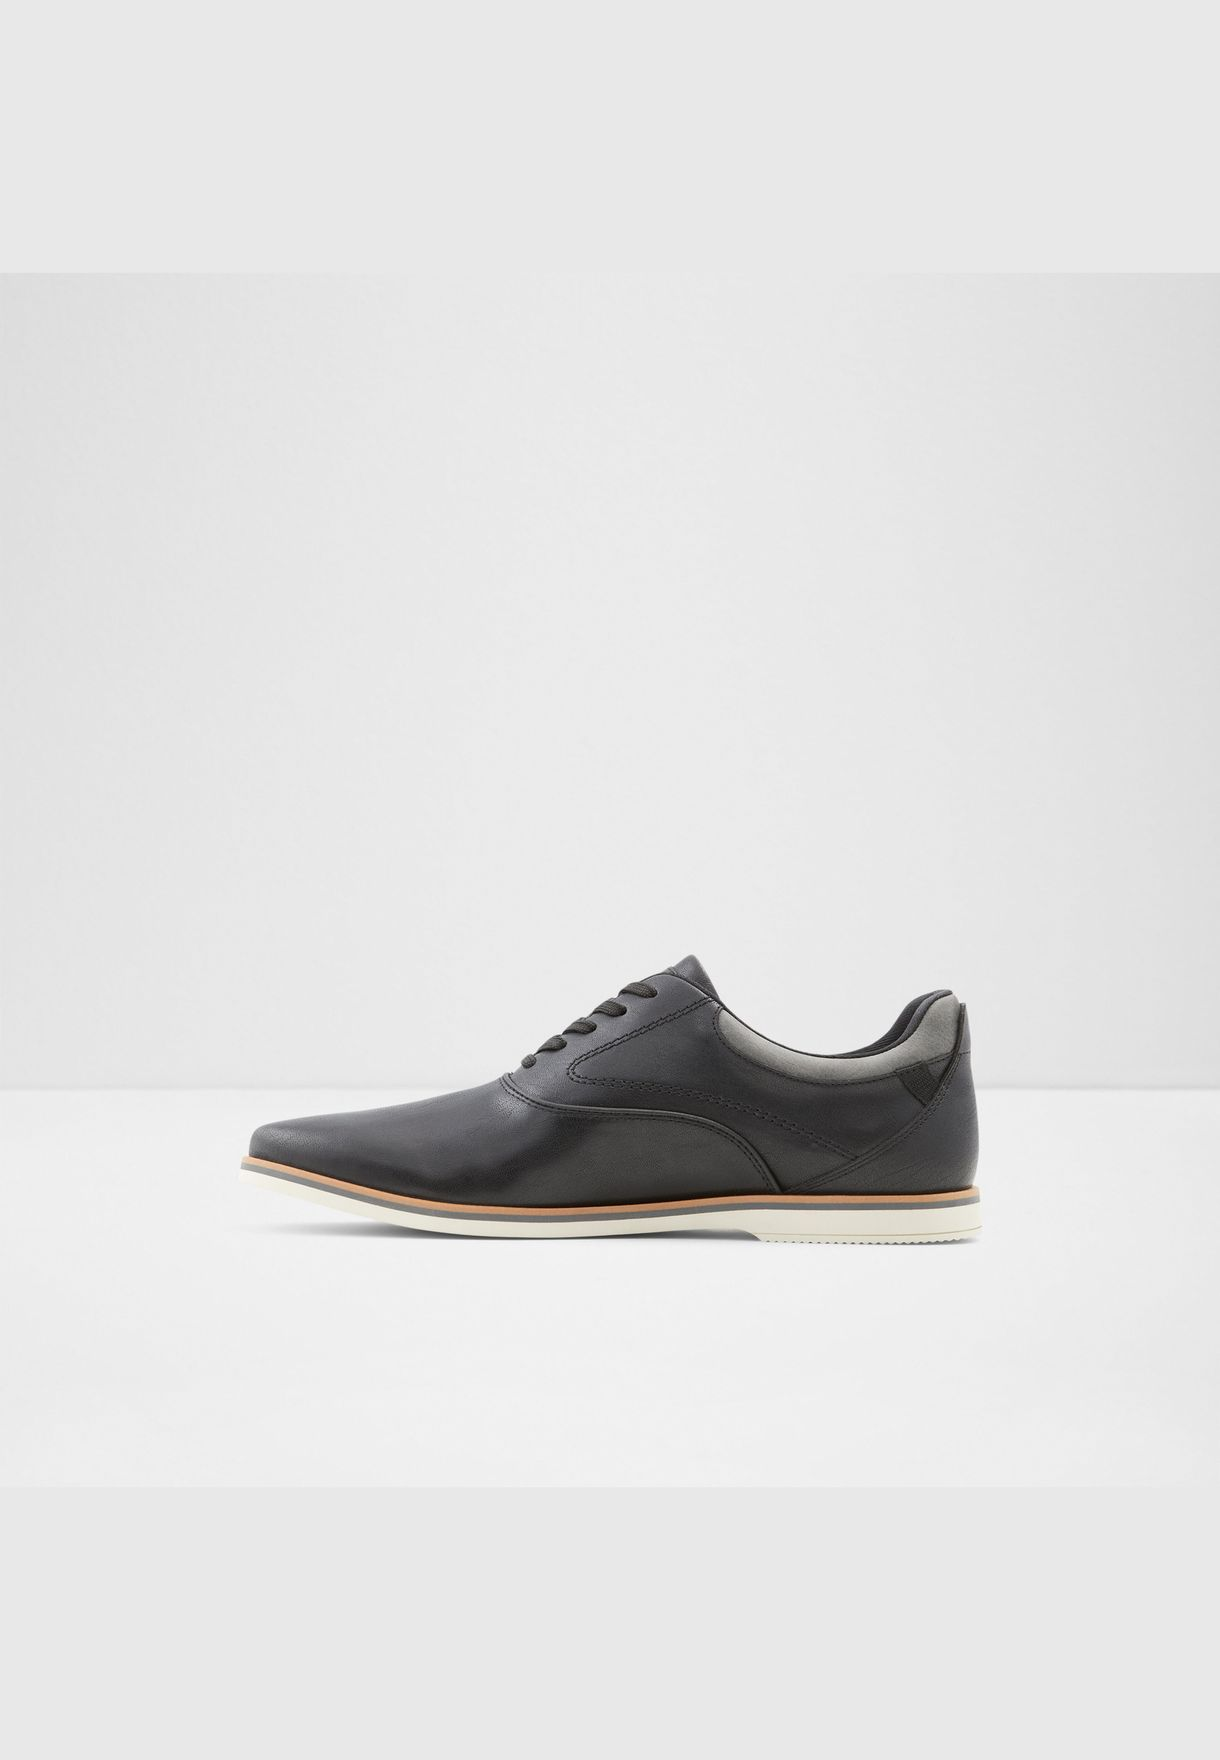 Synthetic Leather Shoes Flat Heel